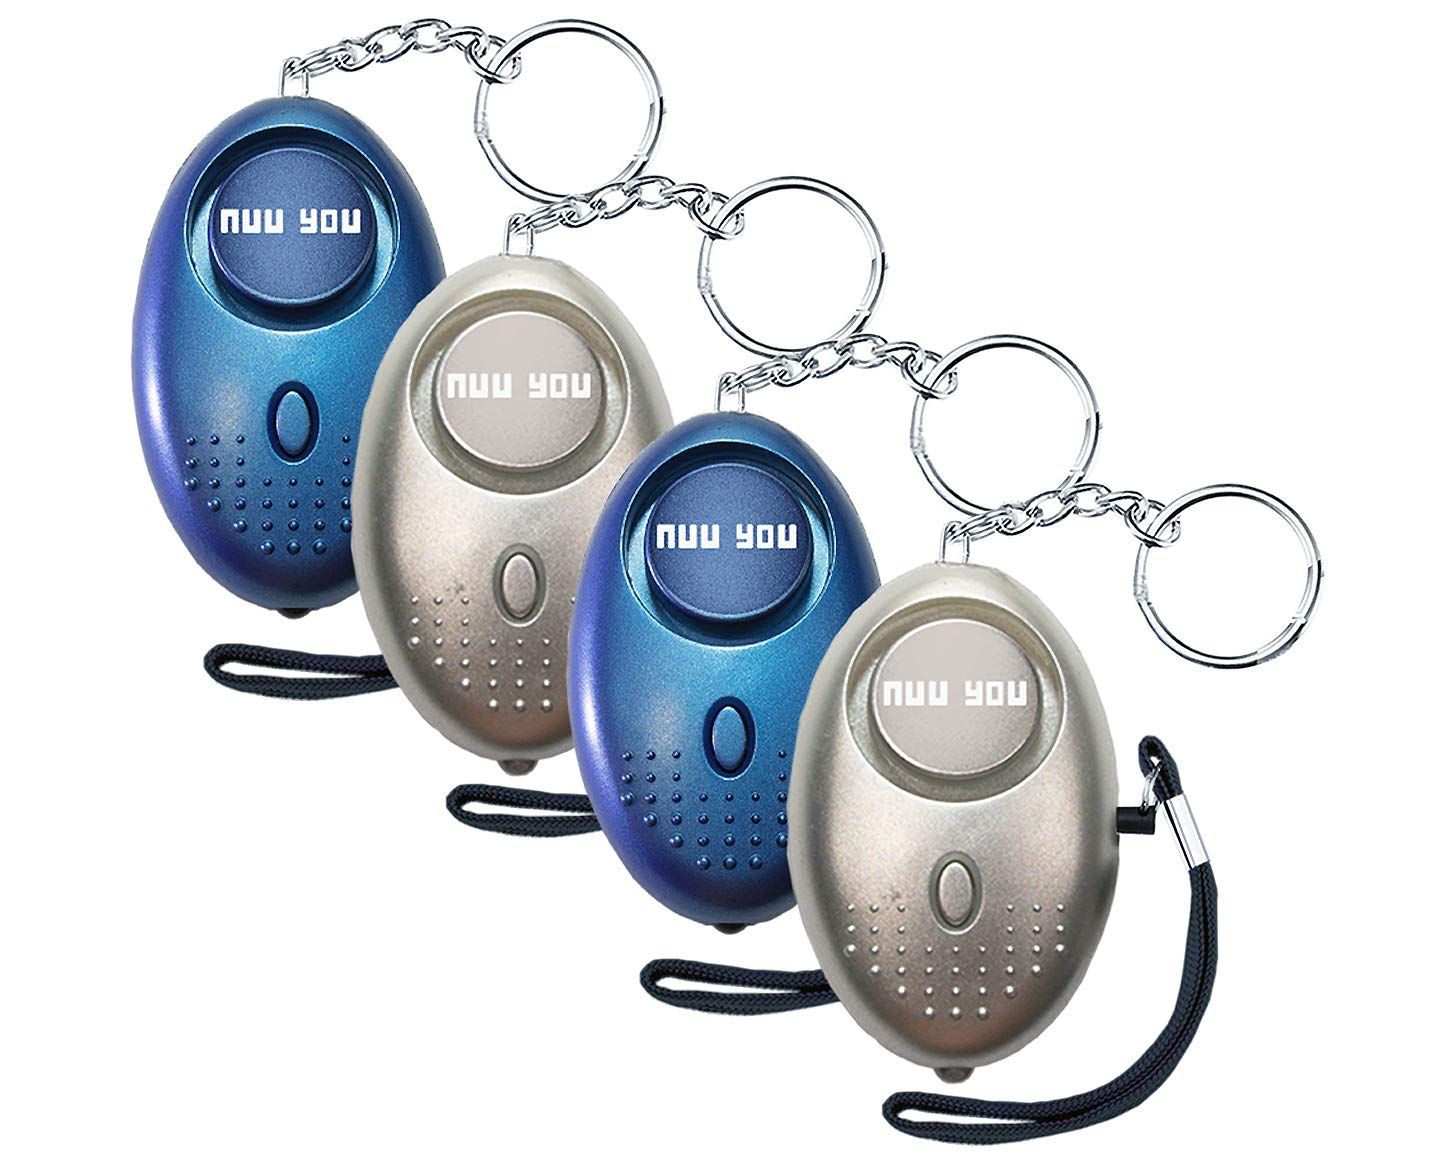 NuuYou Personal Alarms for Woman Siren 140 DB with LED Light Emergency Safety Sound Alarm Keychain for Personal Alarm Women/Kids/Girls/Elderly Self Defense Device Policeman Recommend (Silver&Blue) by Nuu You